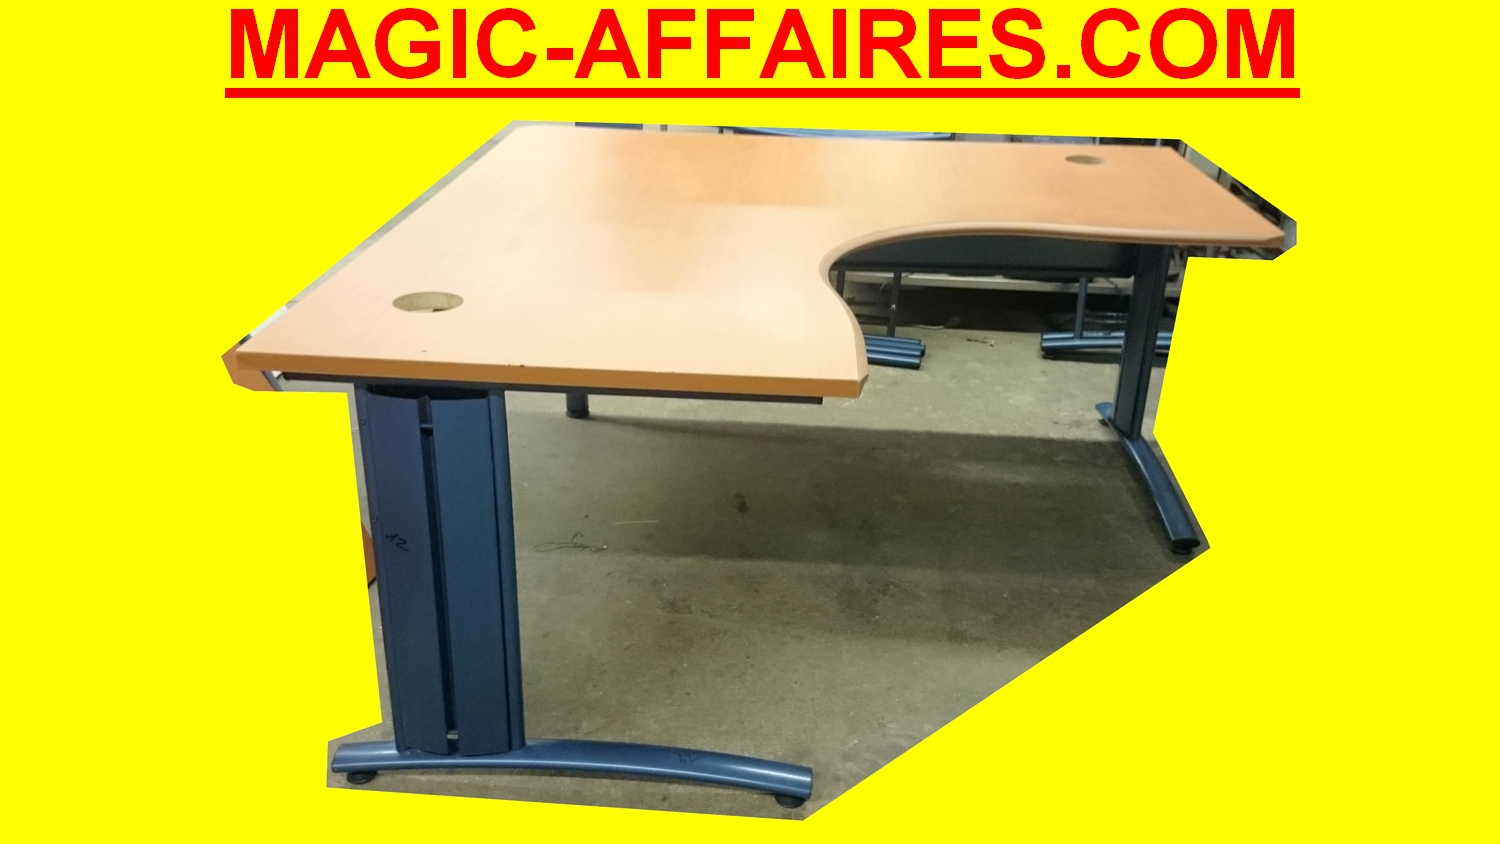 Achat Bureau D'angle Professionnel Agencement Magasin Commerce Boutique Agencement Bureau Magic